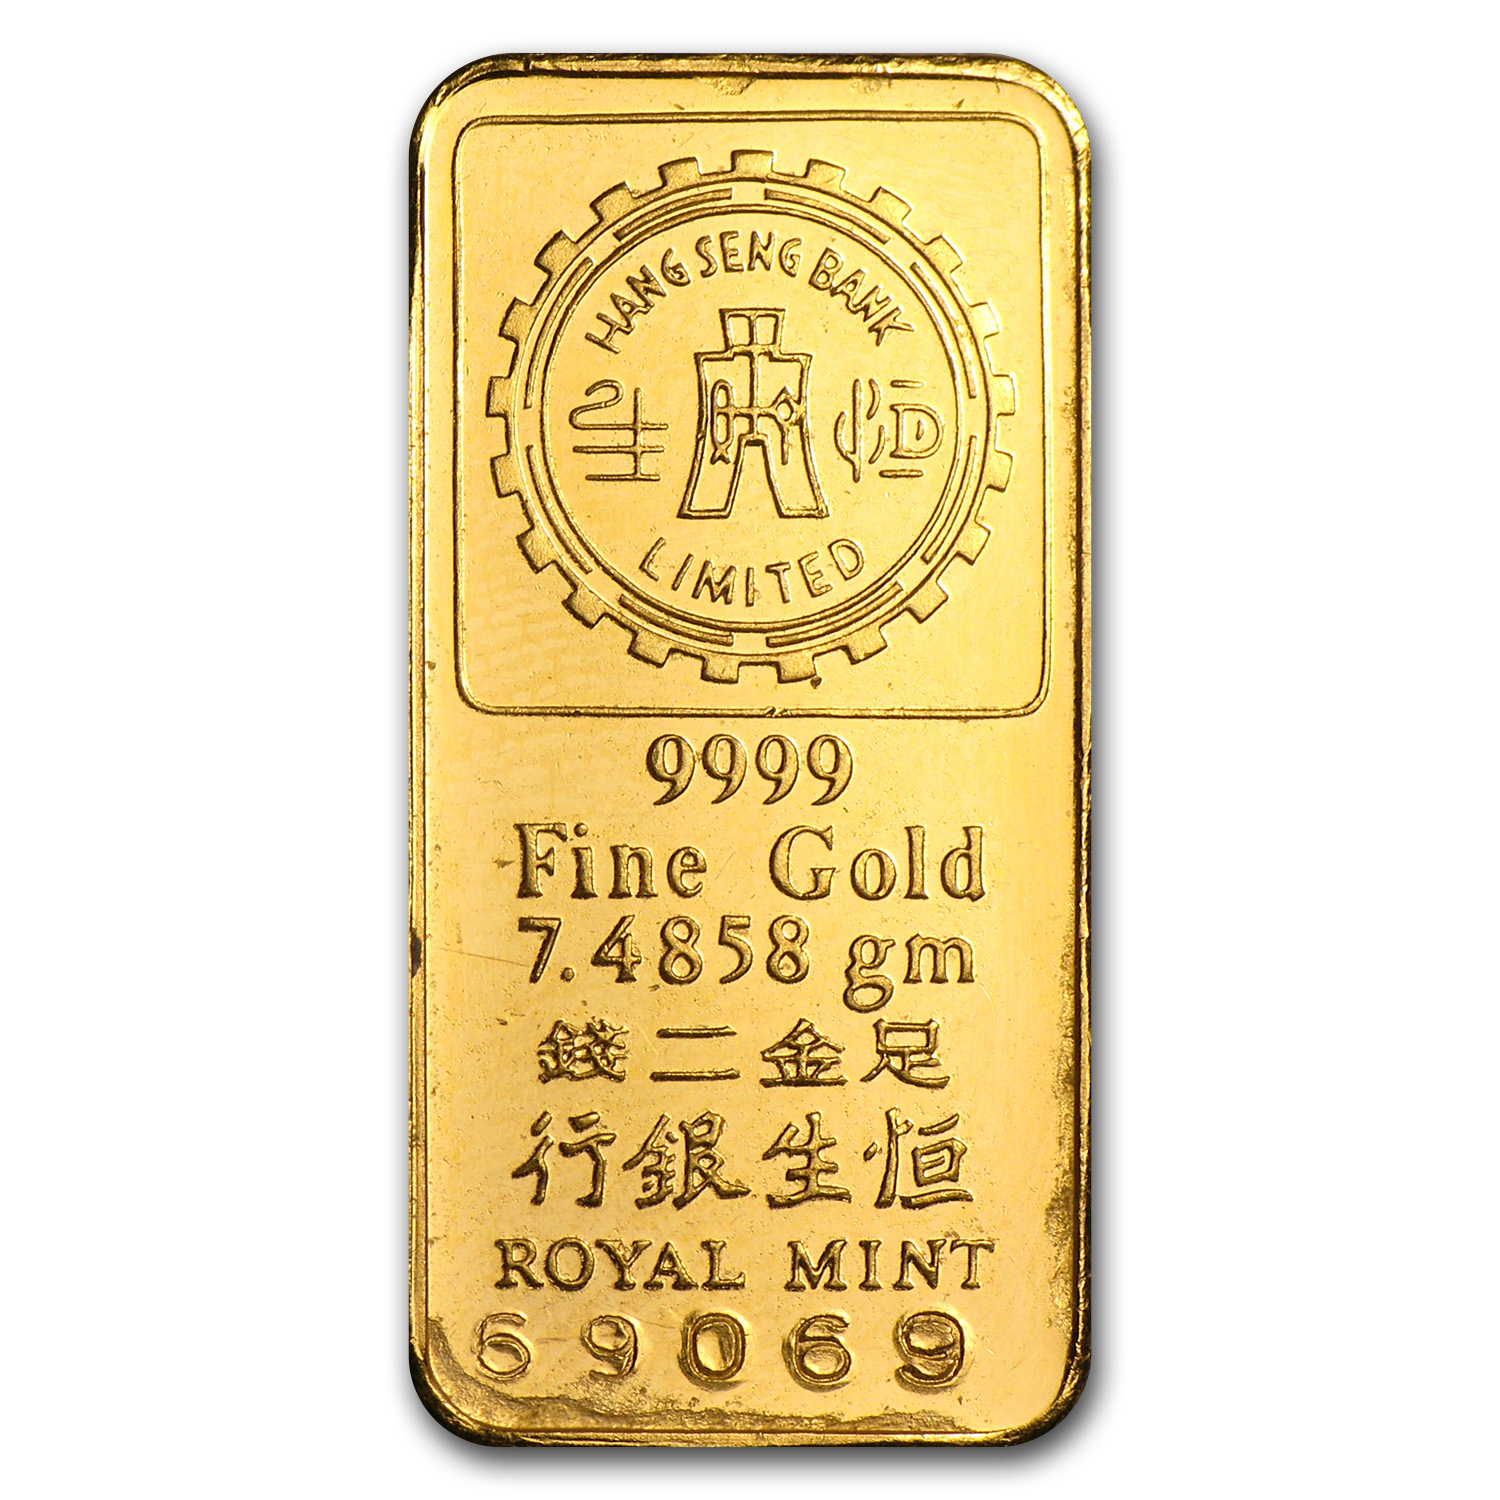 7.4858 gram Gold Bars - Hang Seng Bank